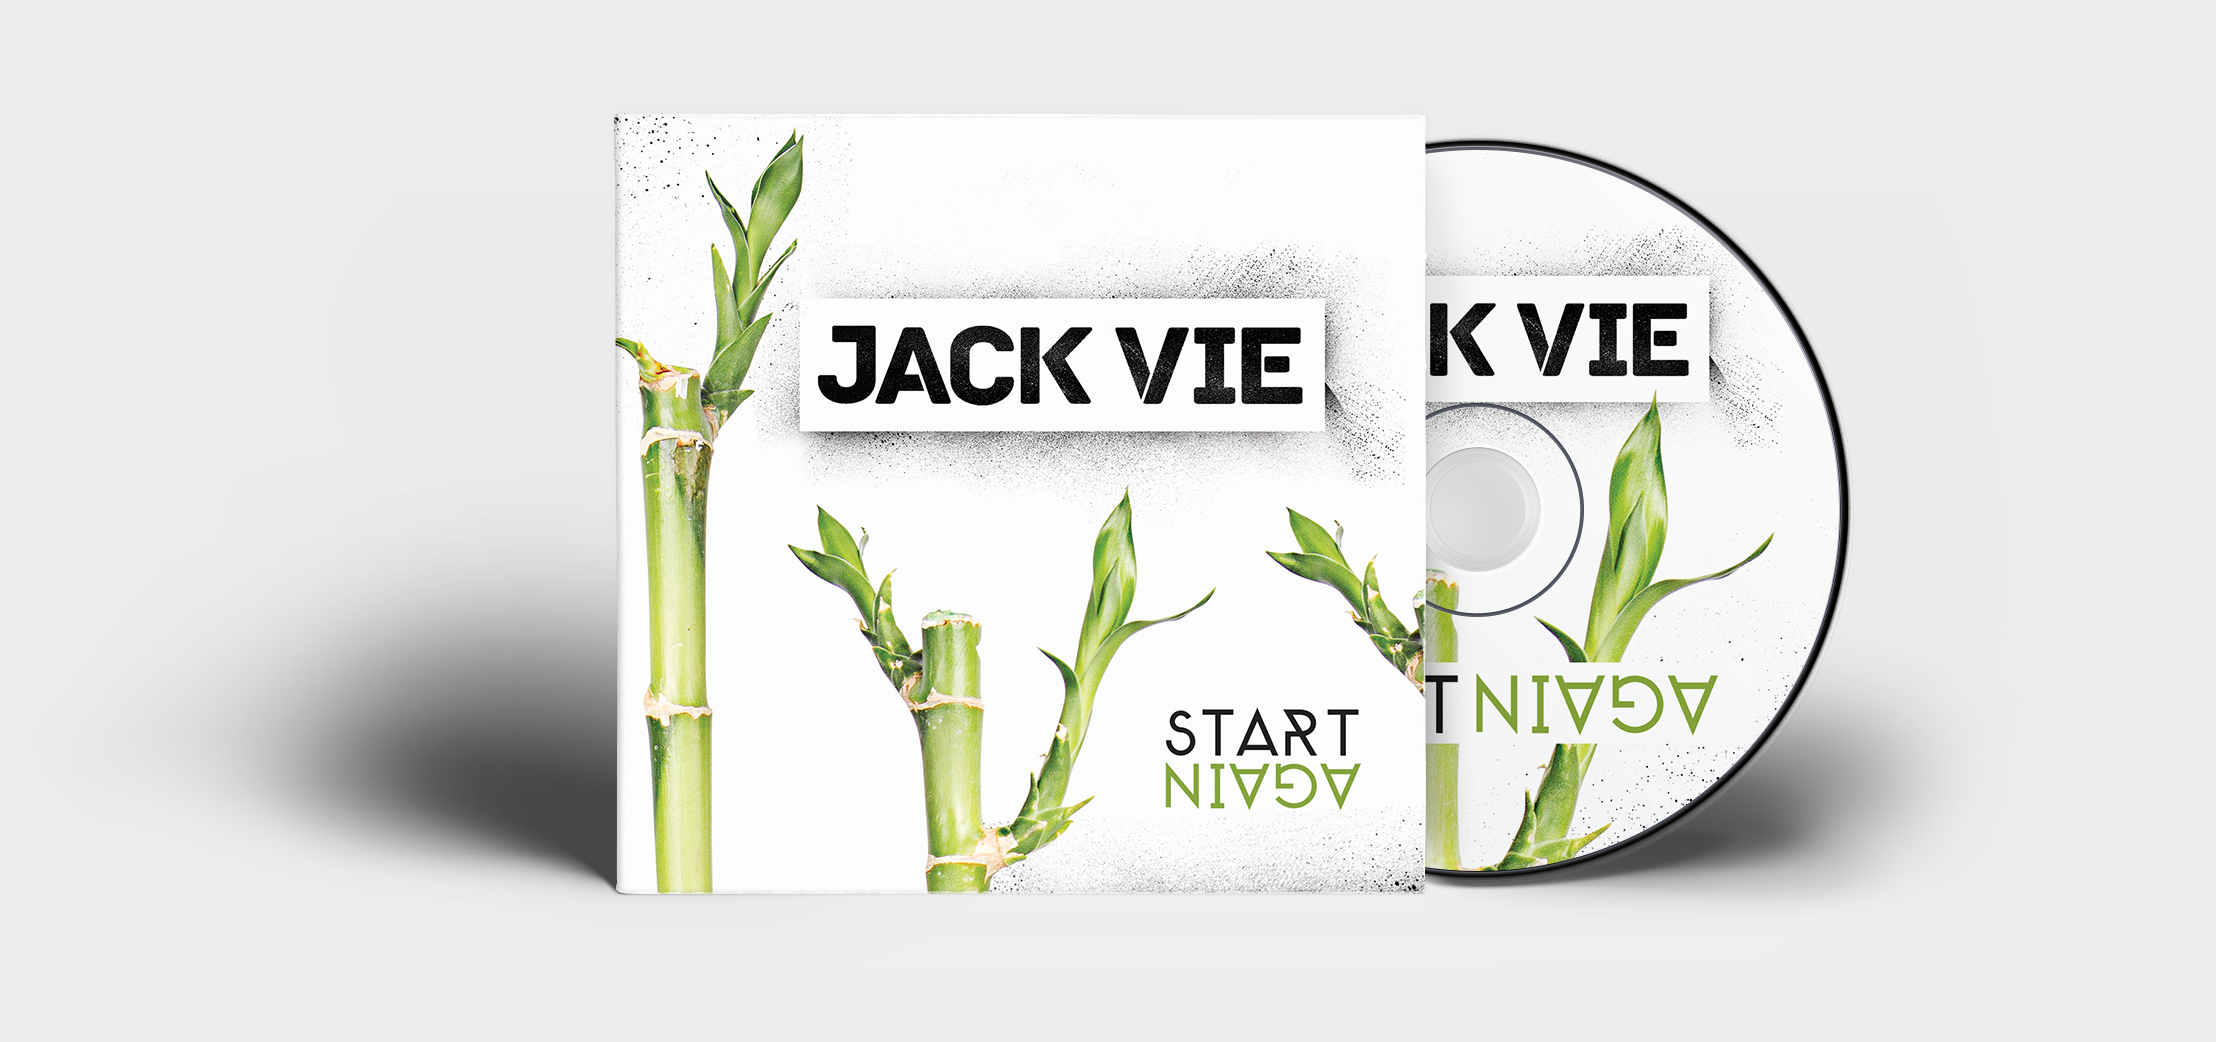 Album cover for Australian hip hop artist Jack Vie. Designed in Perth, 2013.